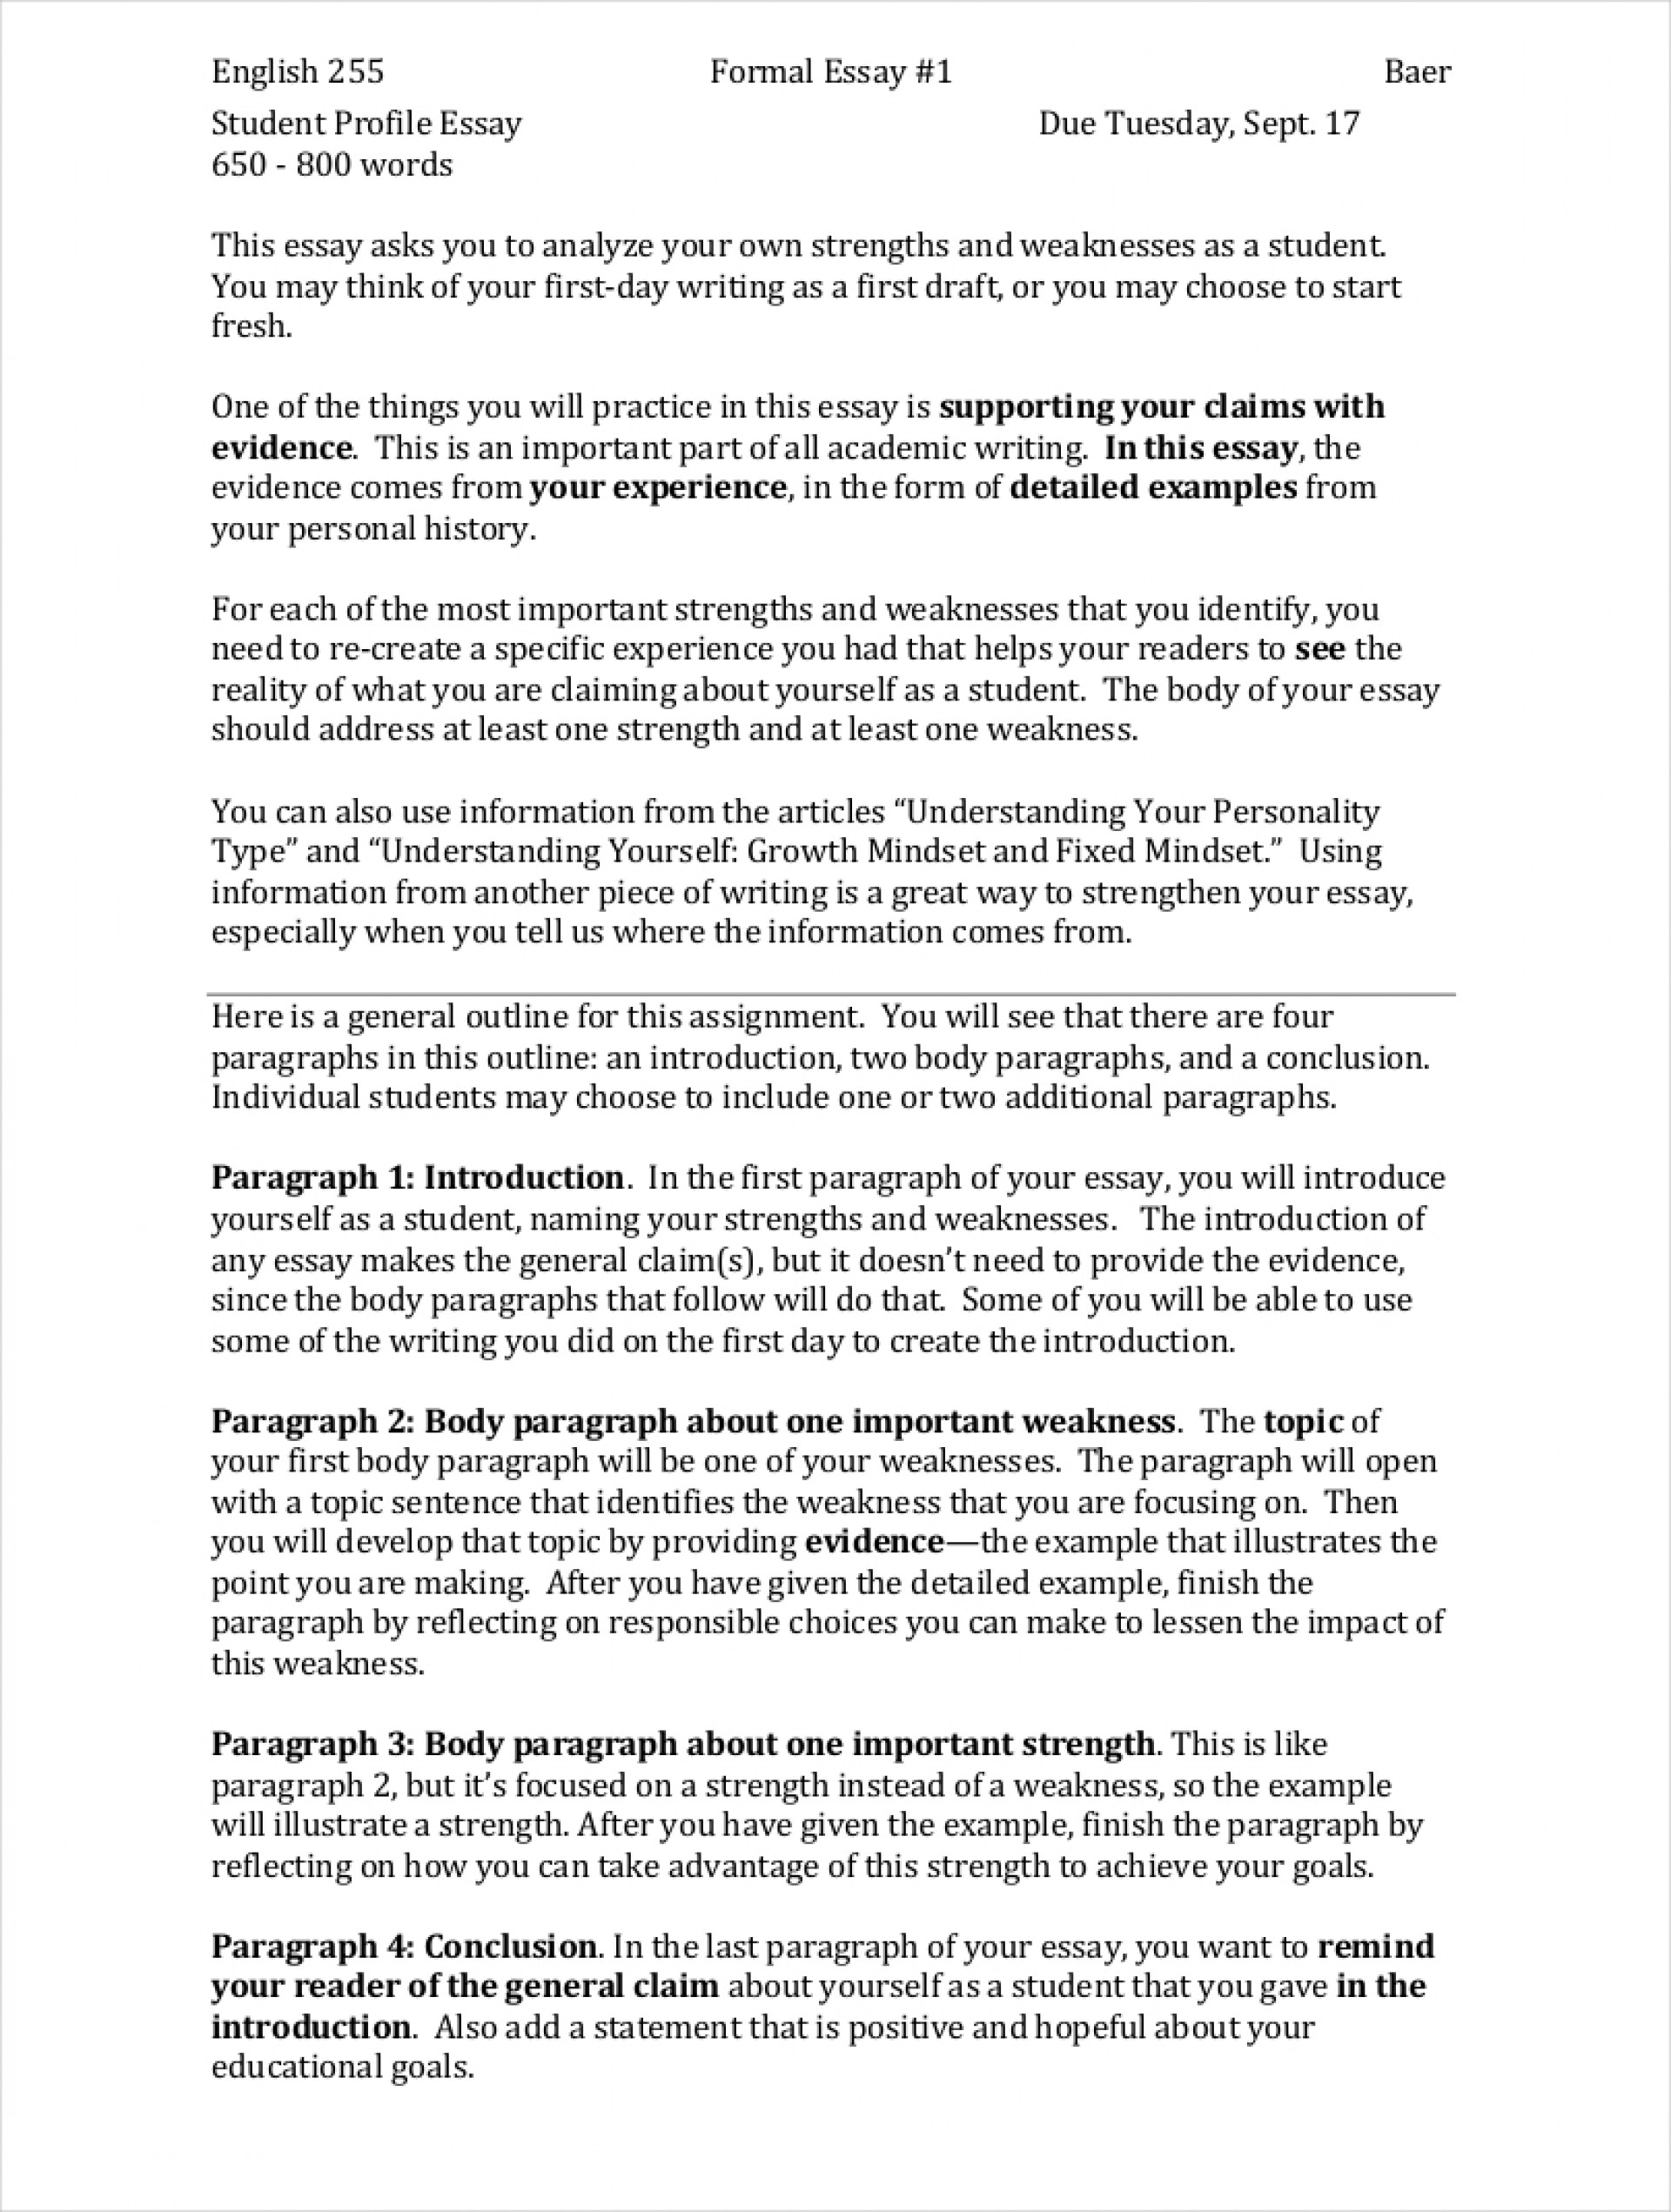 007 Samples Of Formal Essays Free Pdf Format Download My Strengths And Weaknesses In Writing Essay Student Profile Sa Impressive Examples Mba For Introduction 1920